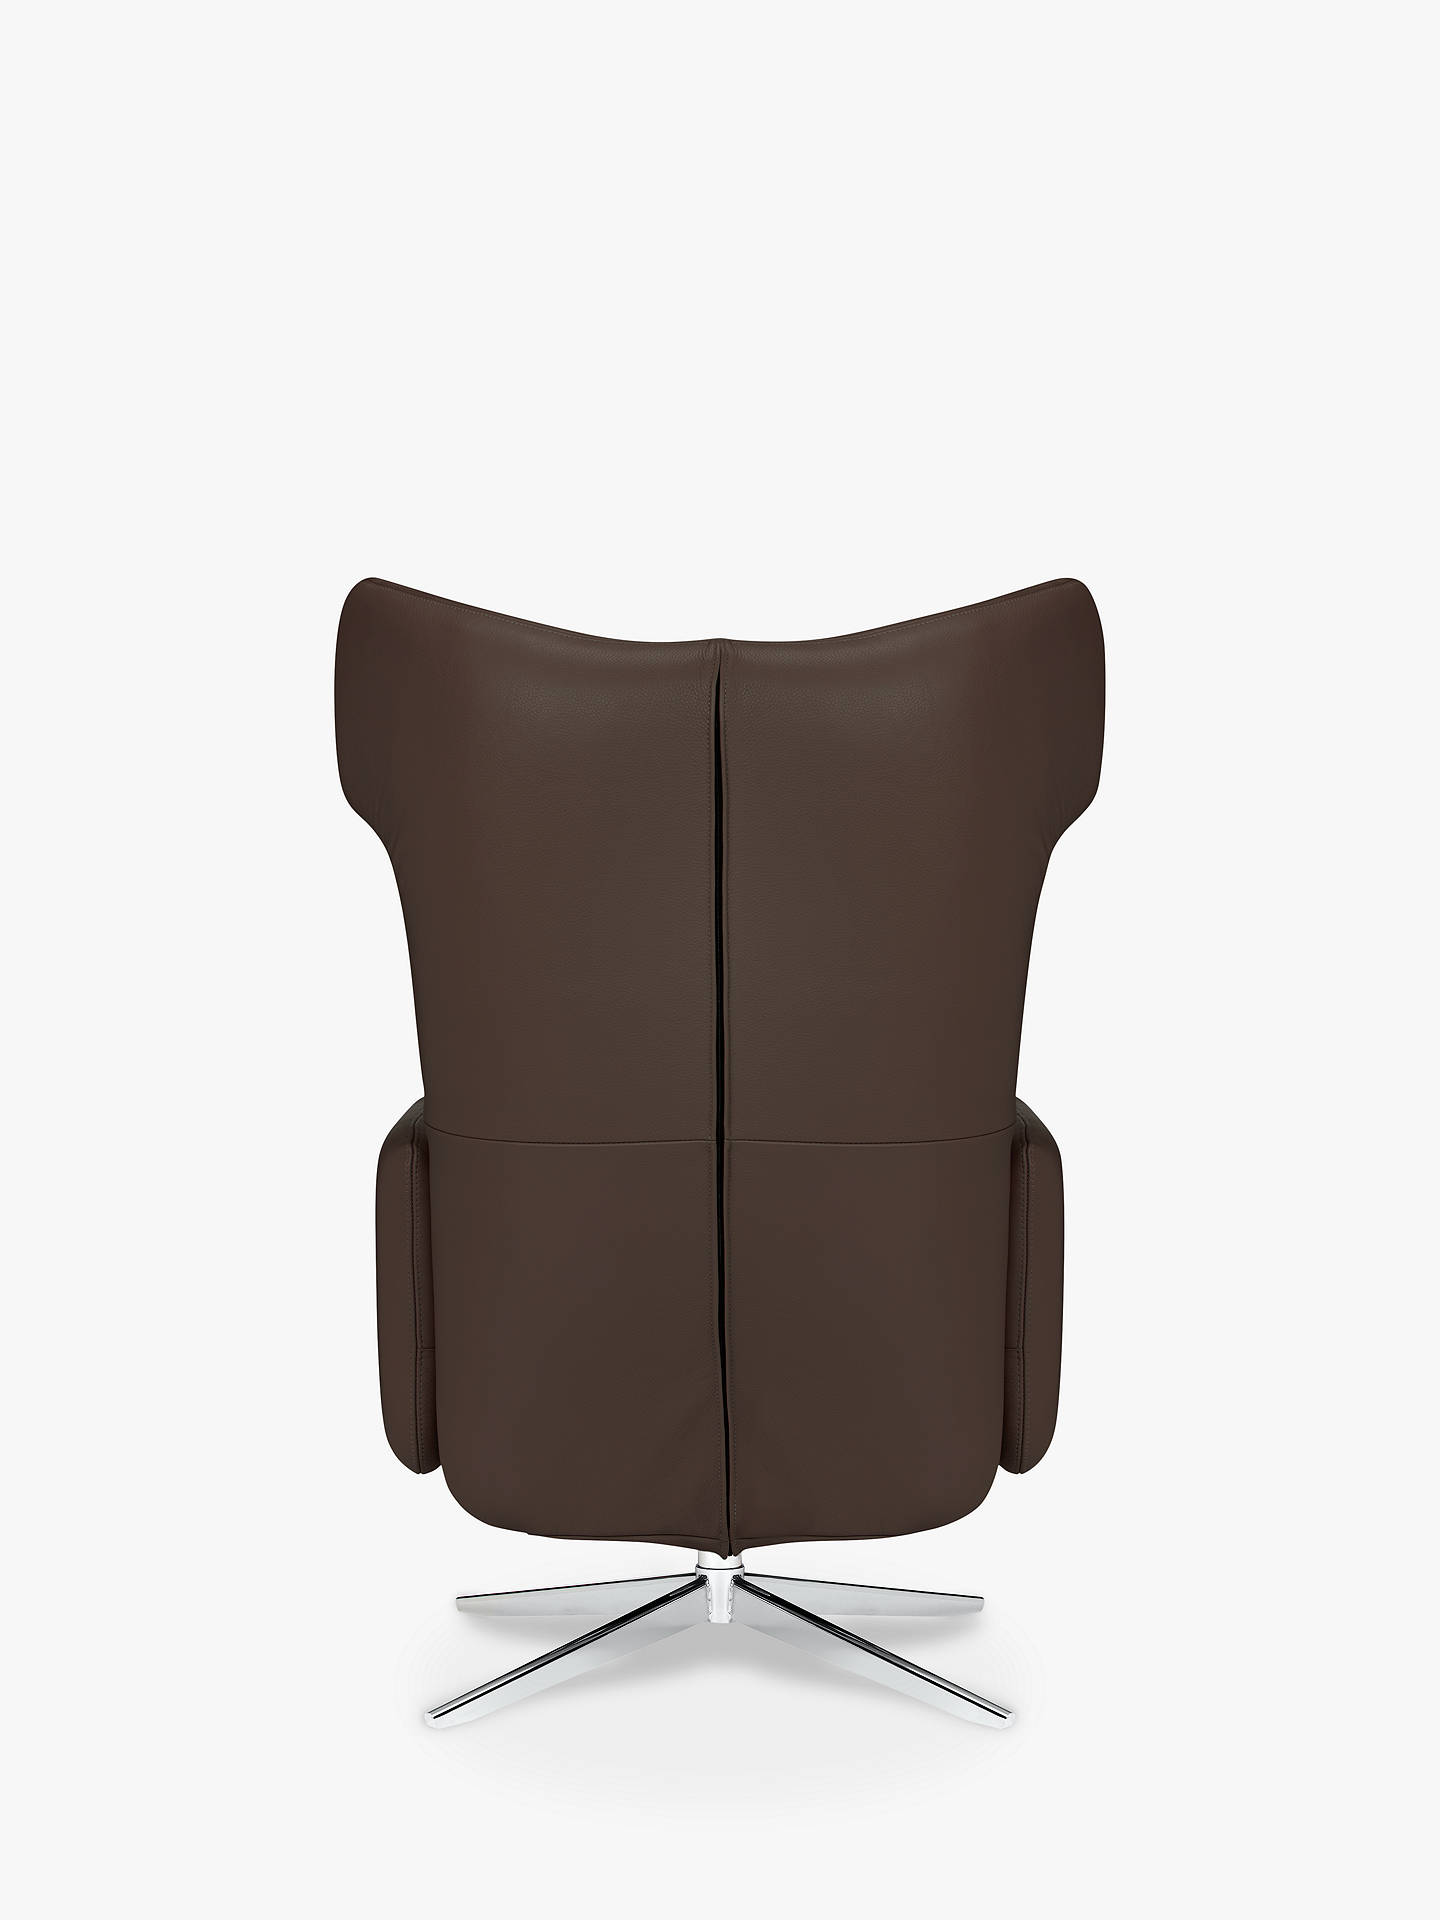 BuyJohn Lewis & Partners Dane Electric Recliner Armchair, Metal Leg, Royal Brown Leather Online at johnlewis.com